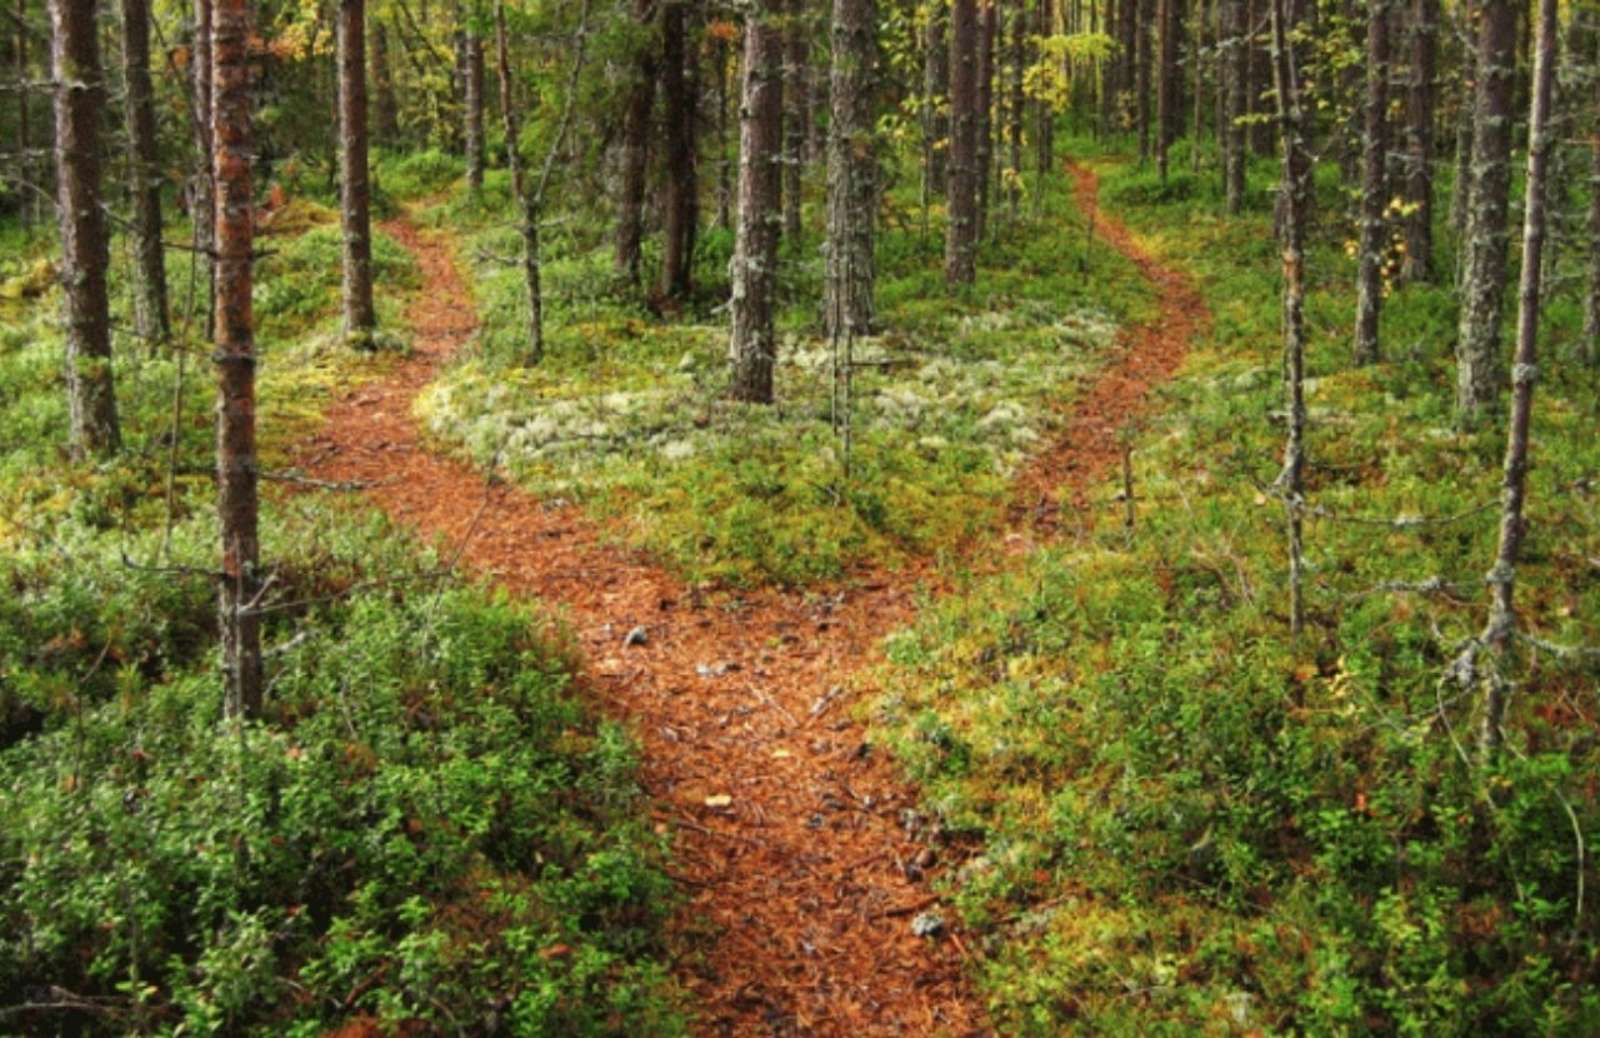 A walking path diverging in the woods